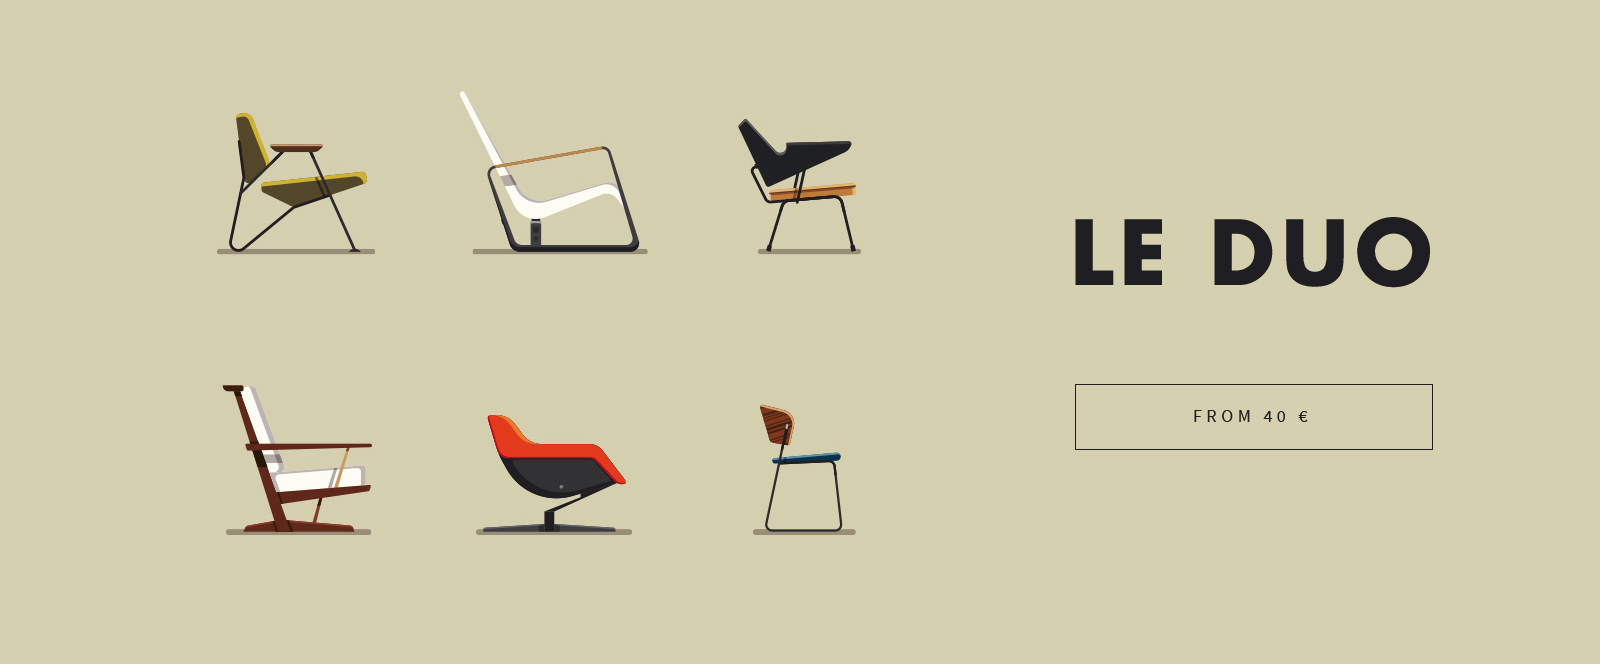 Flat design by LE DUO